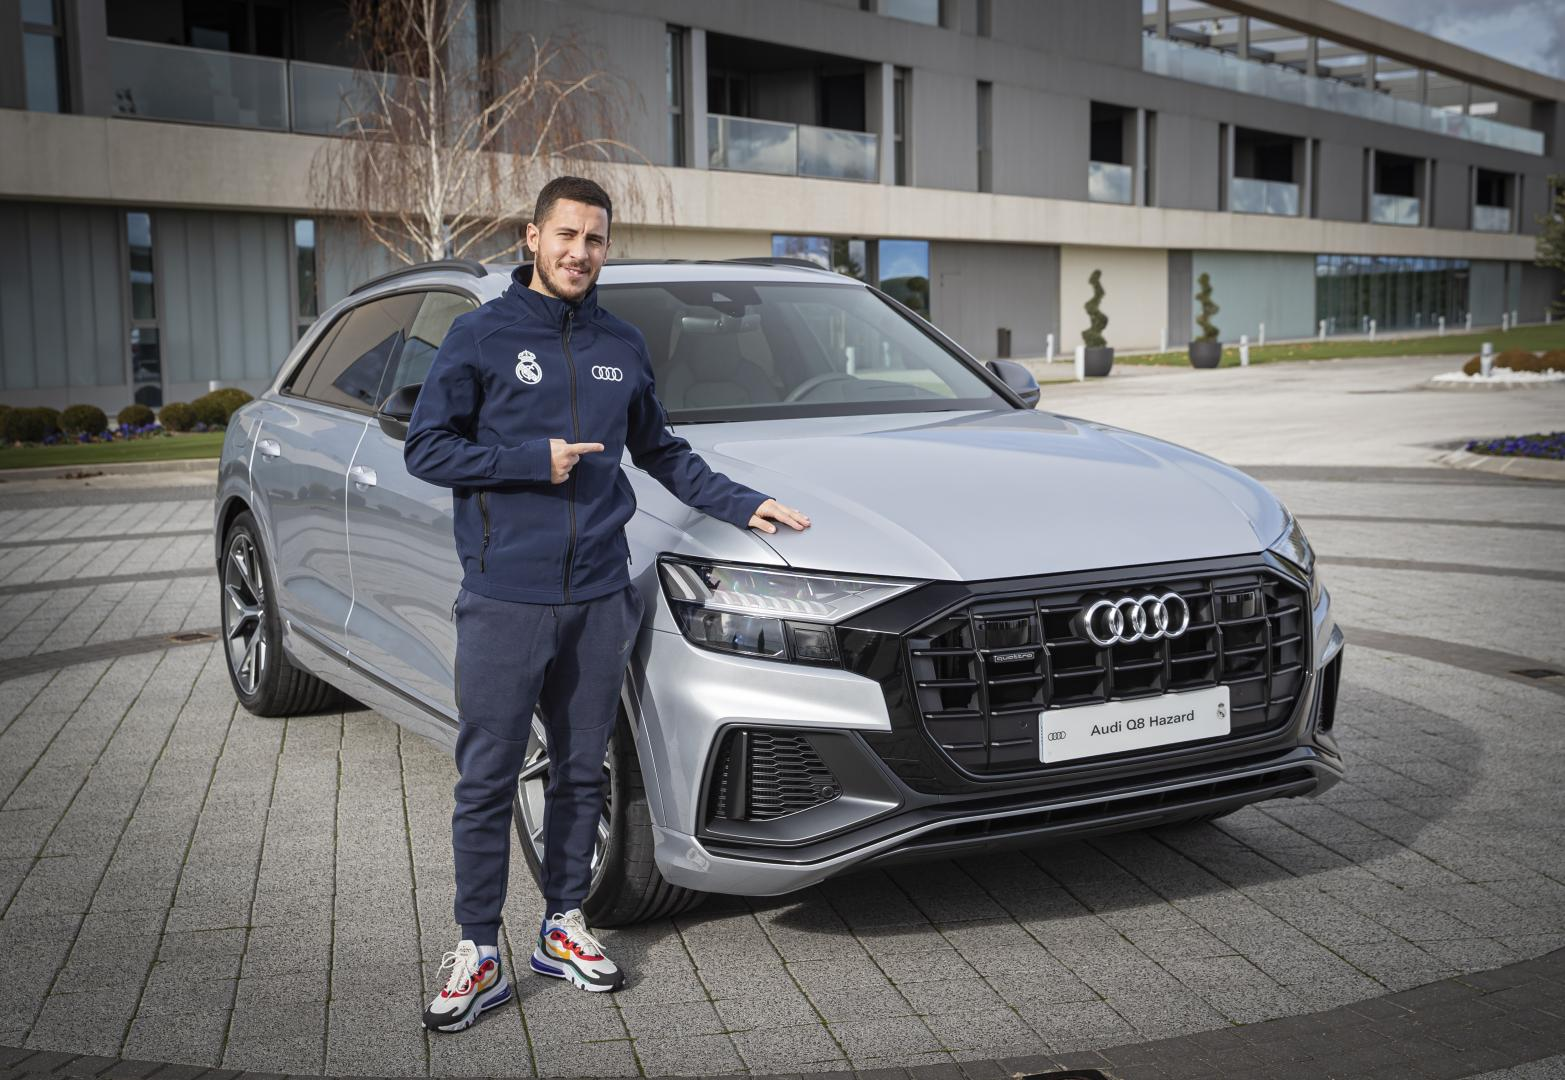 Real Madrid Audi Q8 Hazard